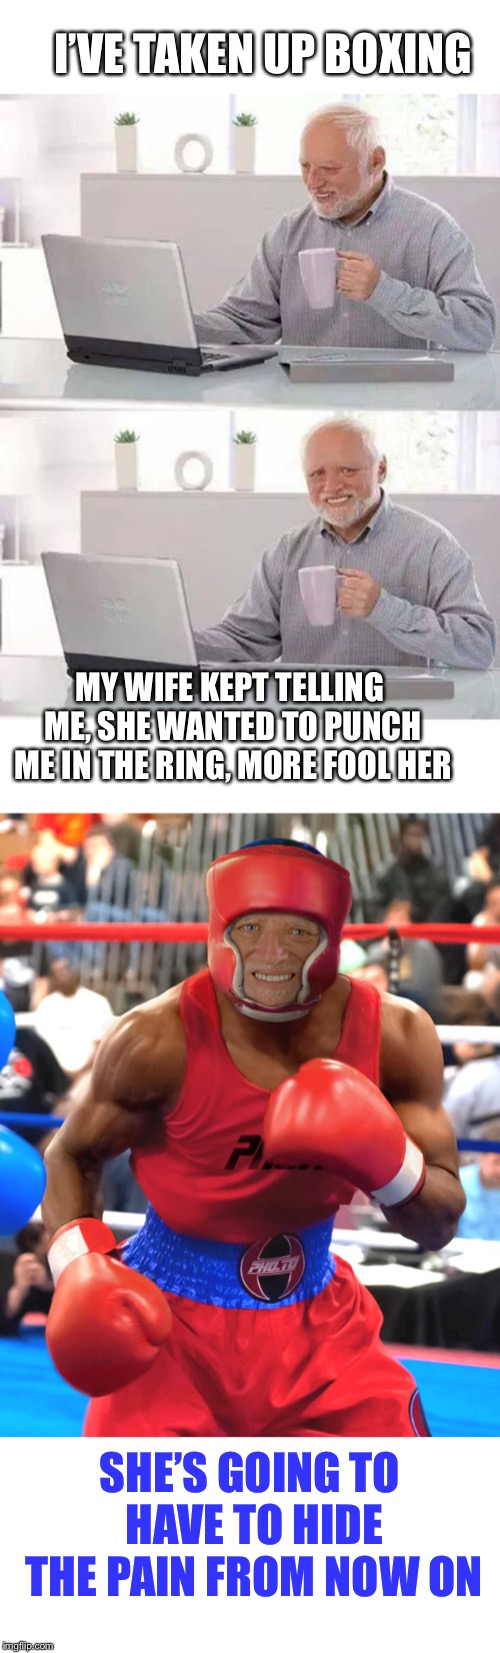 No hiding the pain, no gain.  | MY WIFE KEPT TELLING ME, SHE WANTED TO PUNCH ME IN THE RING, MORE FOOL HER I'VE TAKEN UP BOXING SHE'S GOING TO HAVE TO HIDE THE PAIN FROM NO | image tagged in memes,hide the pain harold,boxing,wife,regrets,original content only | made w/ Imgflip meme maker